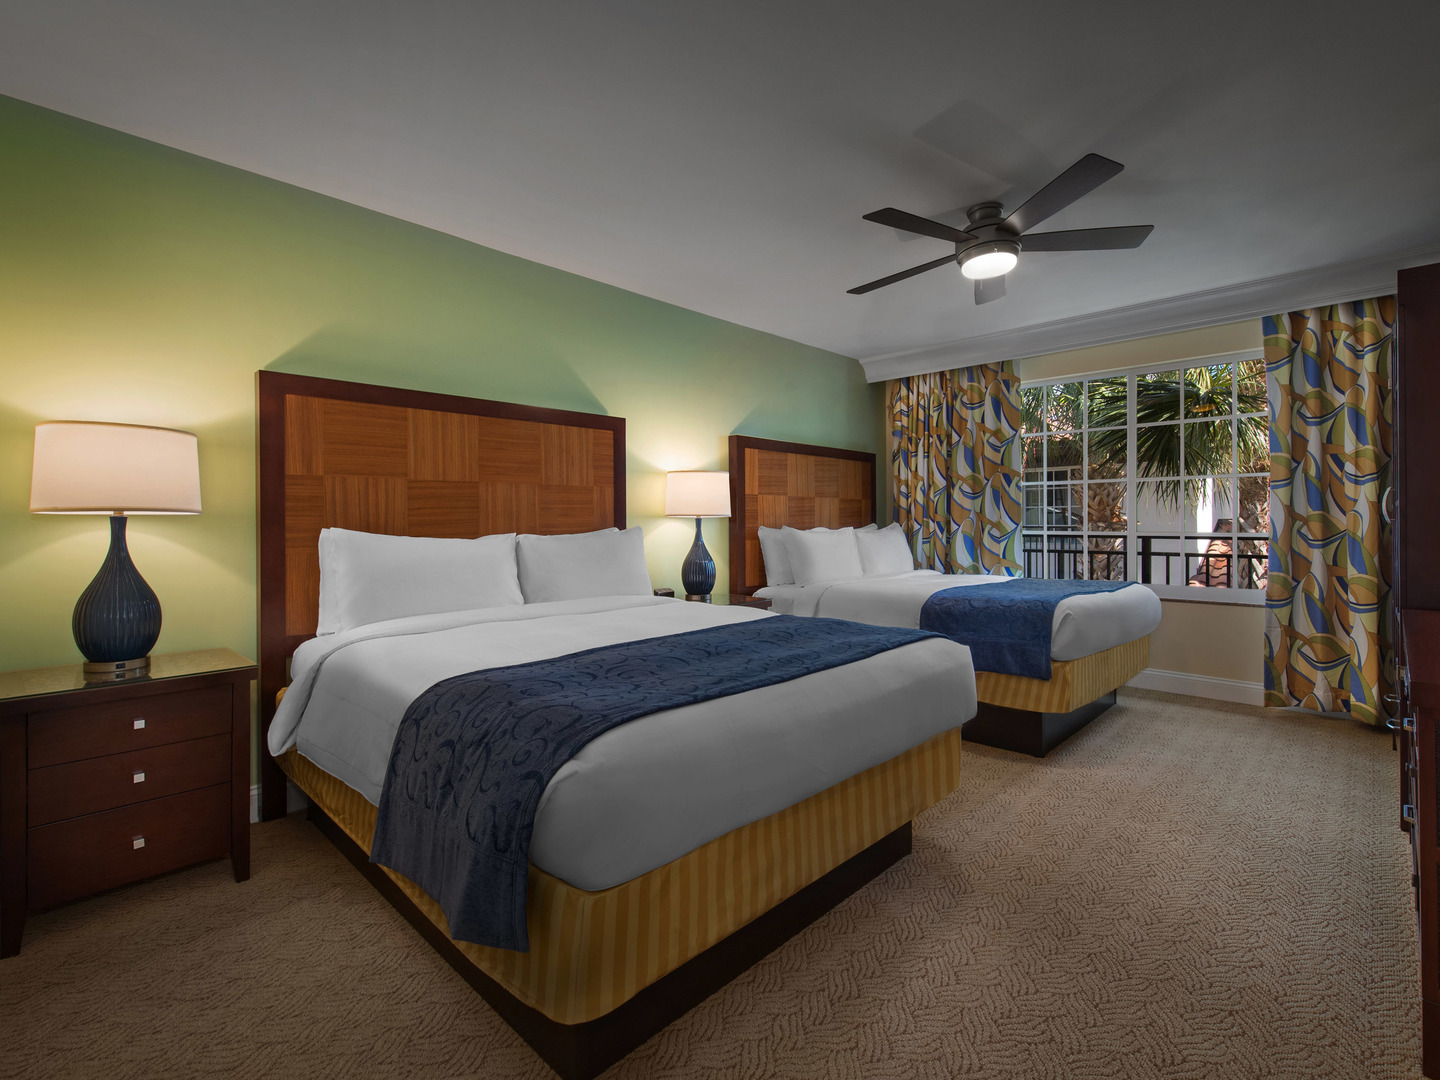 Marriott's Lakeshore Reserve 2-Bedroom Townhouse Guest Bedroom. Marriott's Lakeshore Reserve is located in Orlando, Florida United States.